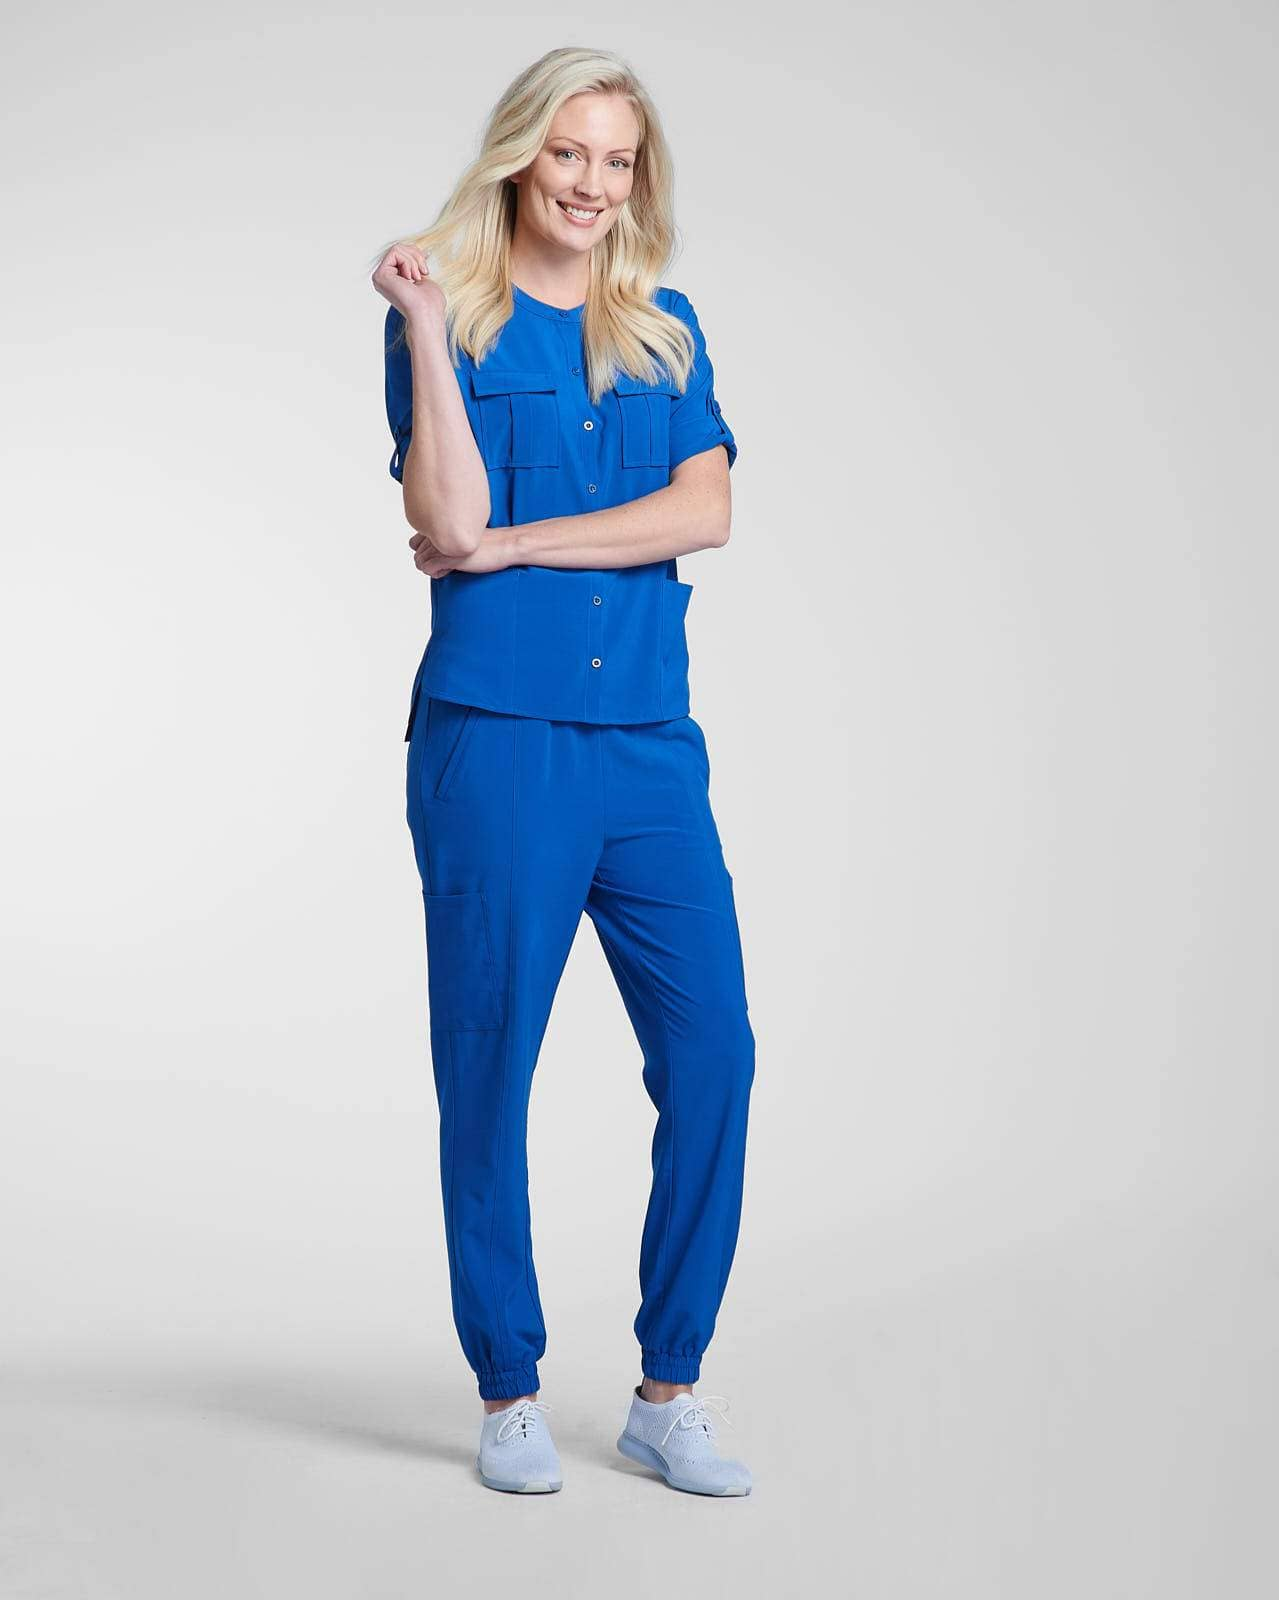 Blue scrub pocket top and jogger pant by Happily Scrubbed